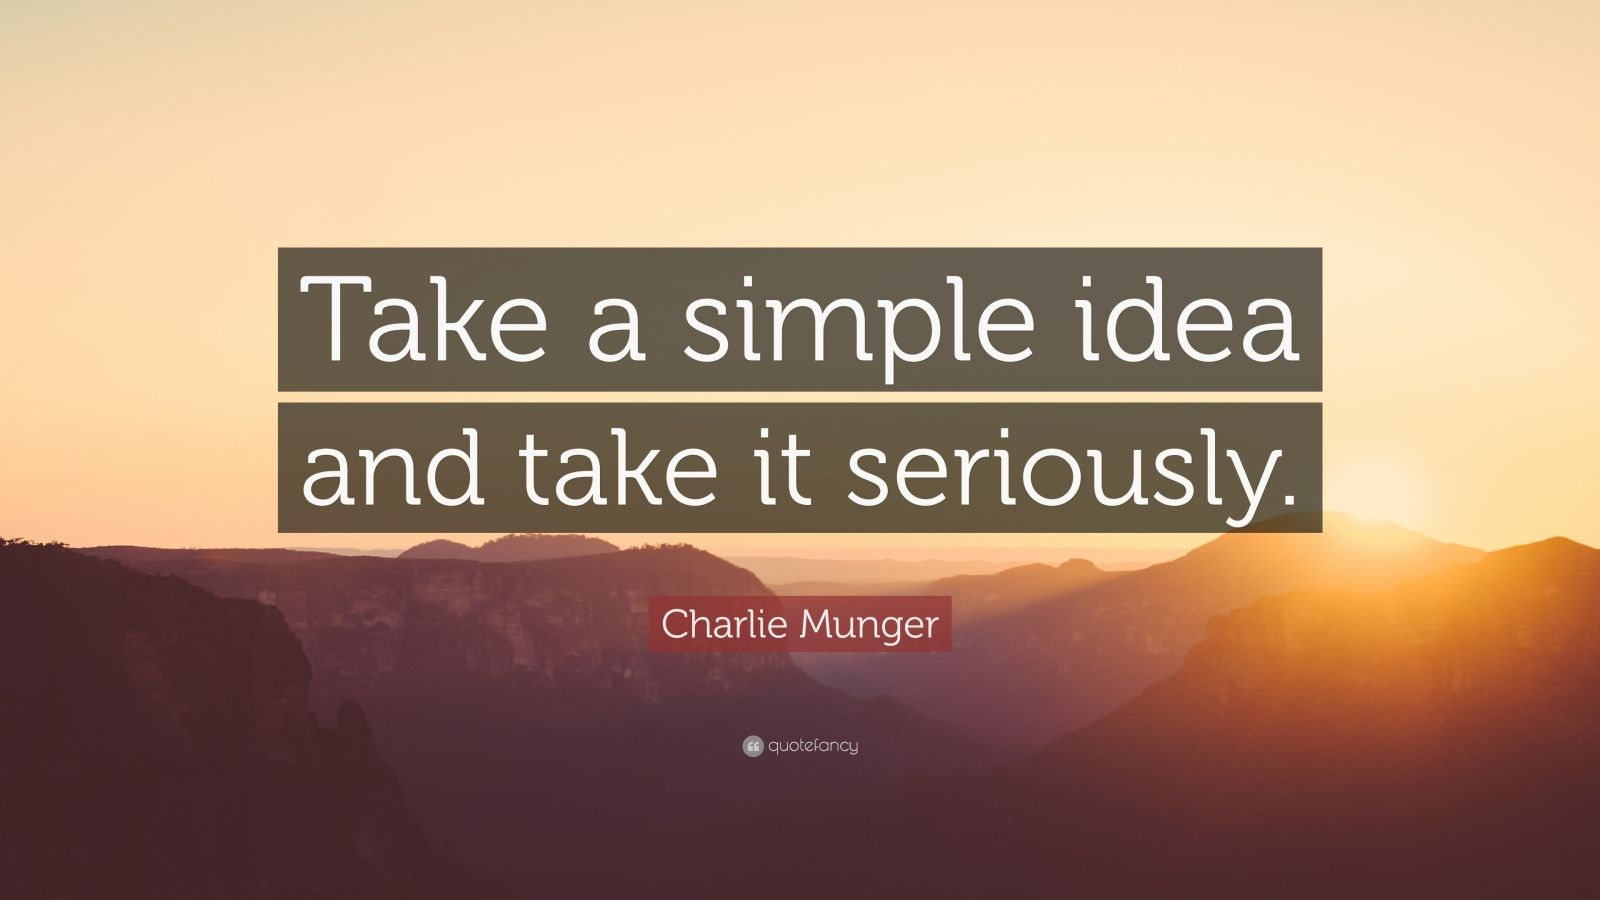 Quote Glamorous Charlie Munger Quotes 100 Wallpapers  Quotefancy